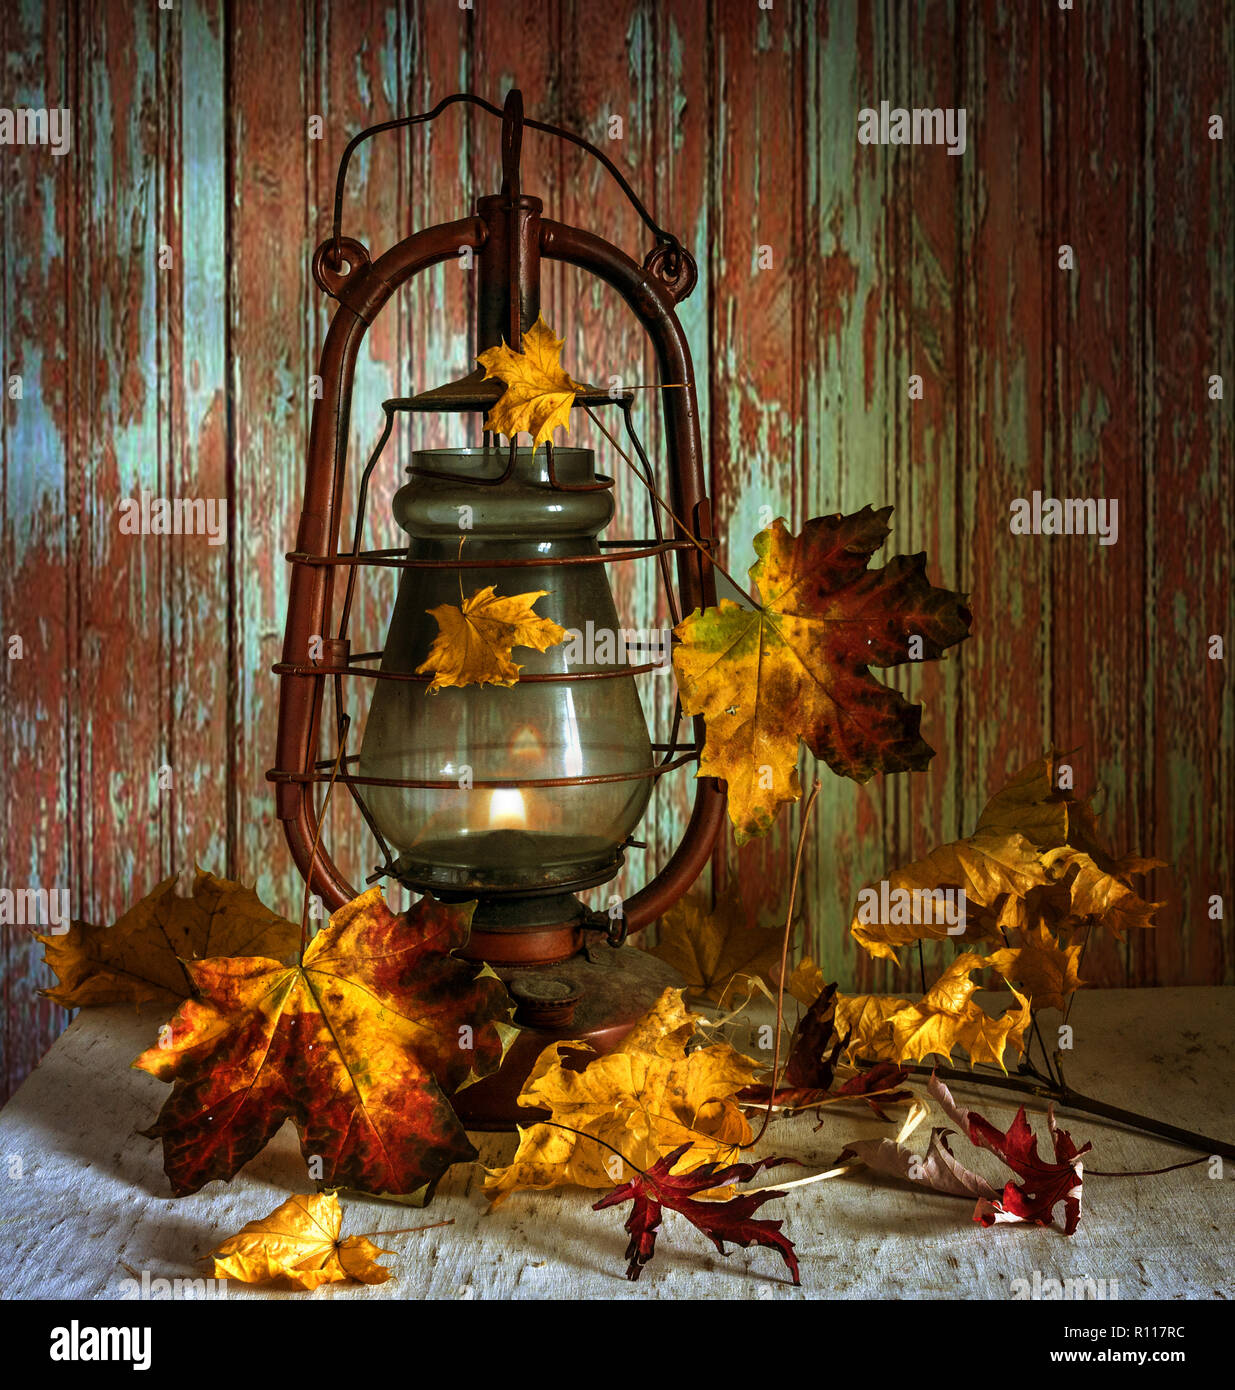 still life with autumn leaves and a kerosene lamp. vintage Stock Photo